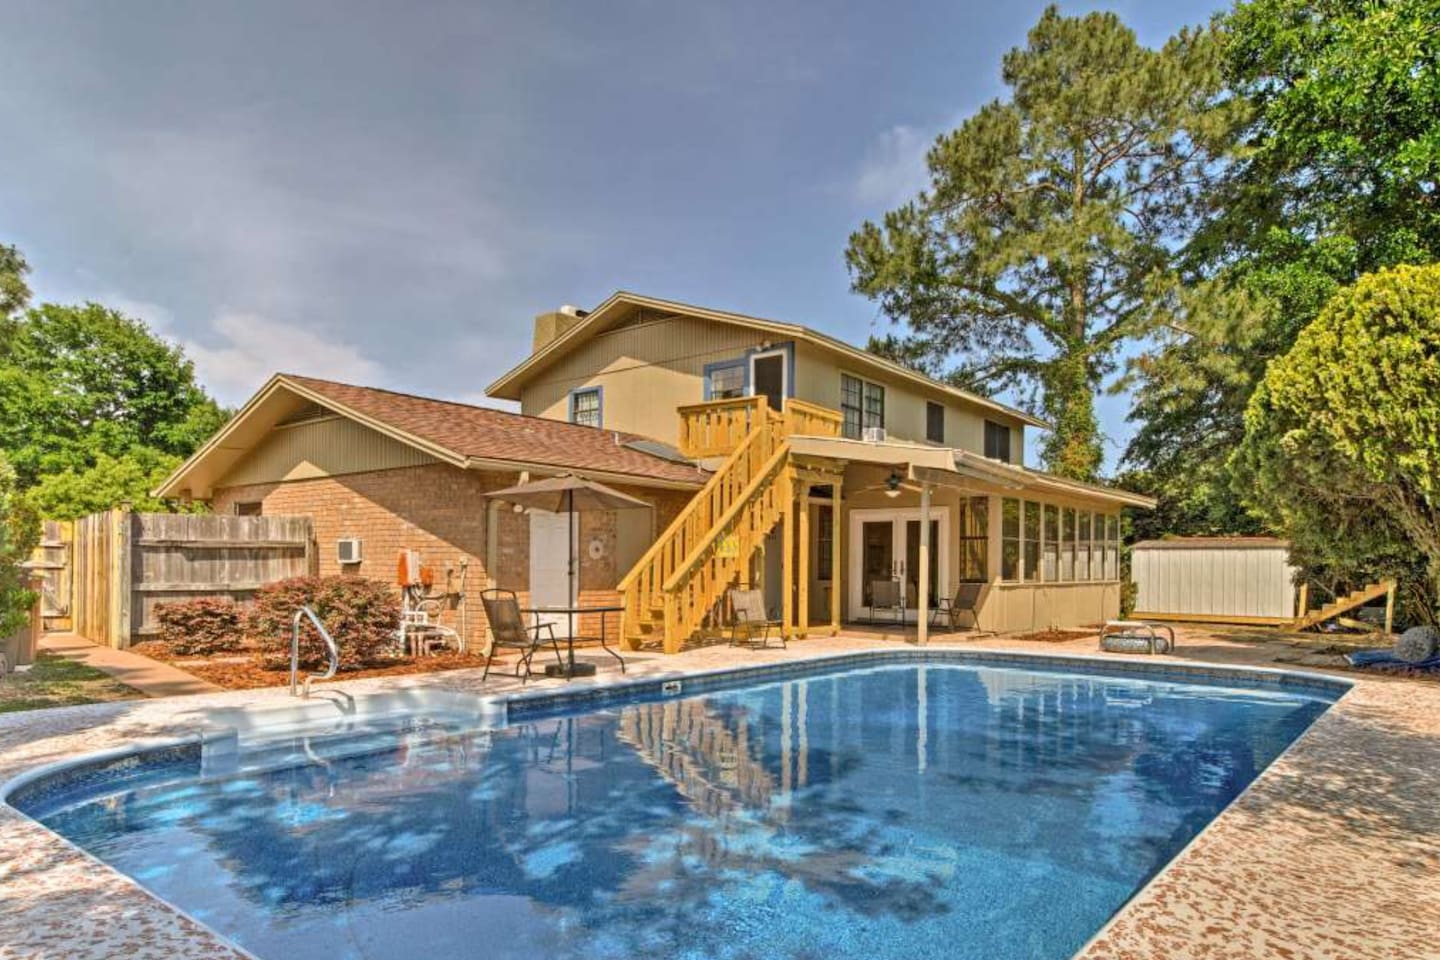 Gorgeous, extremely large 18' X 36' professionally maintained pool. This shows the new entry to the suite!